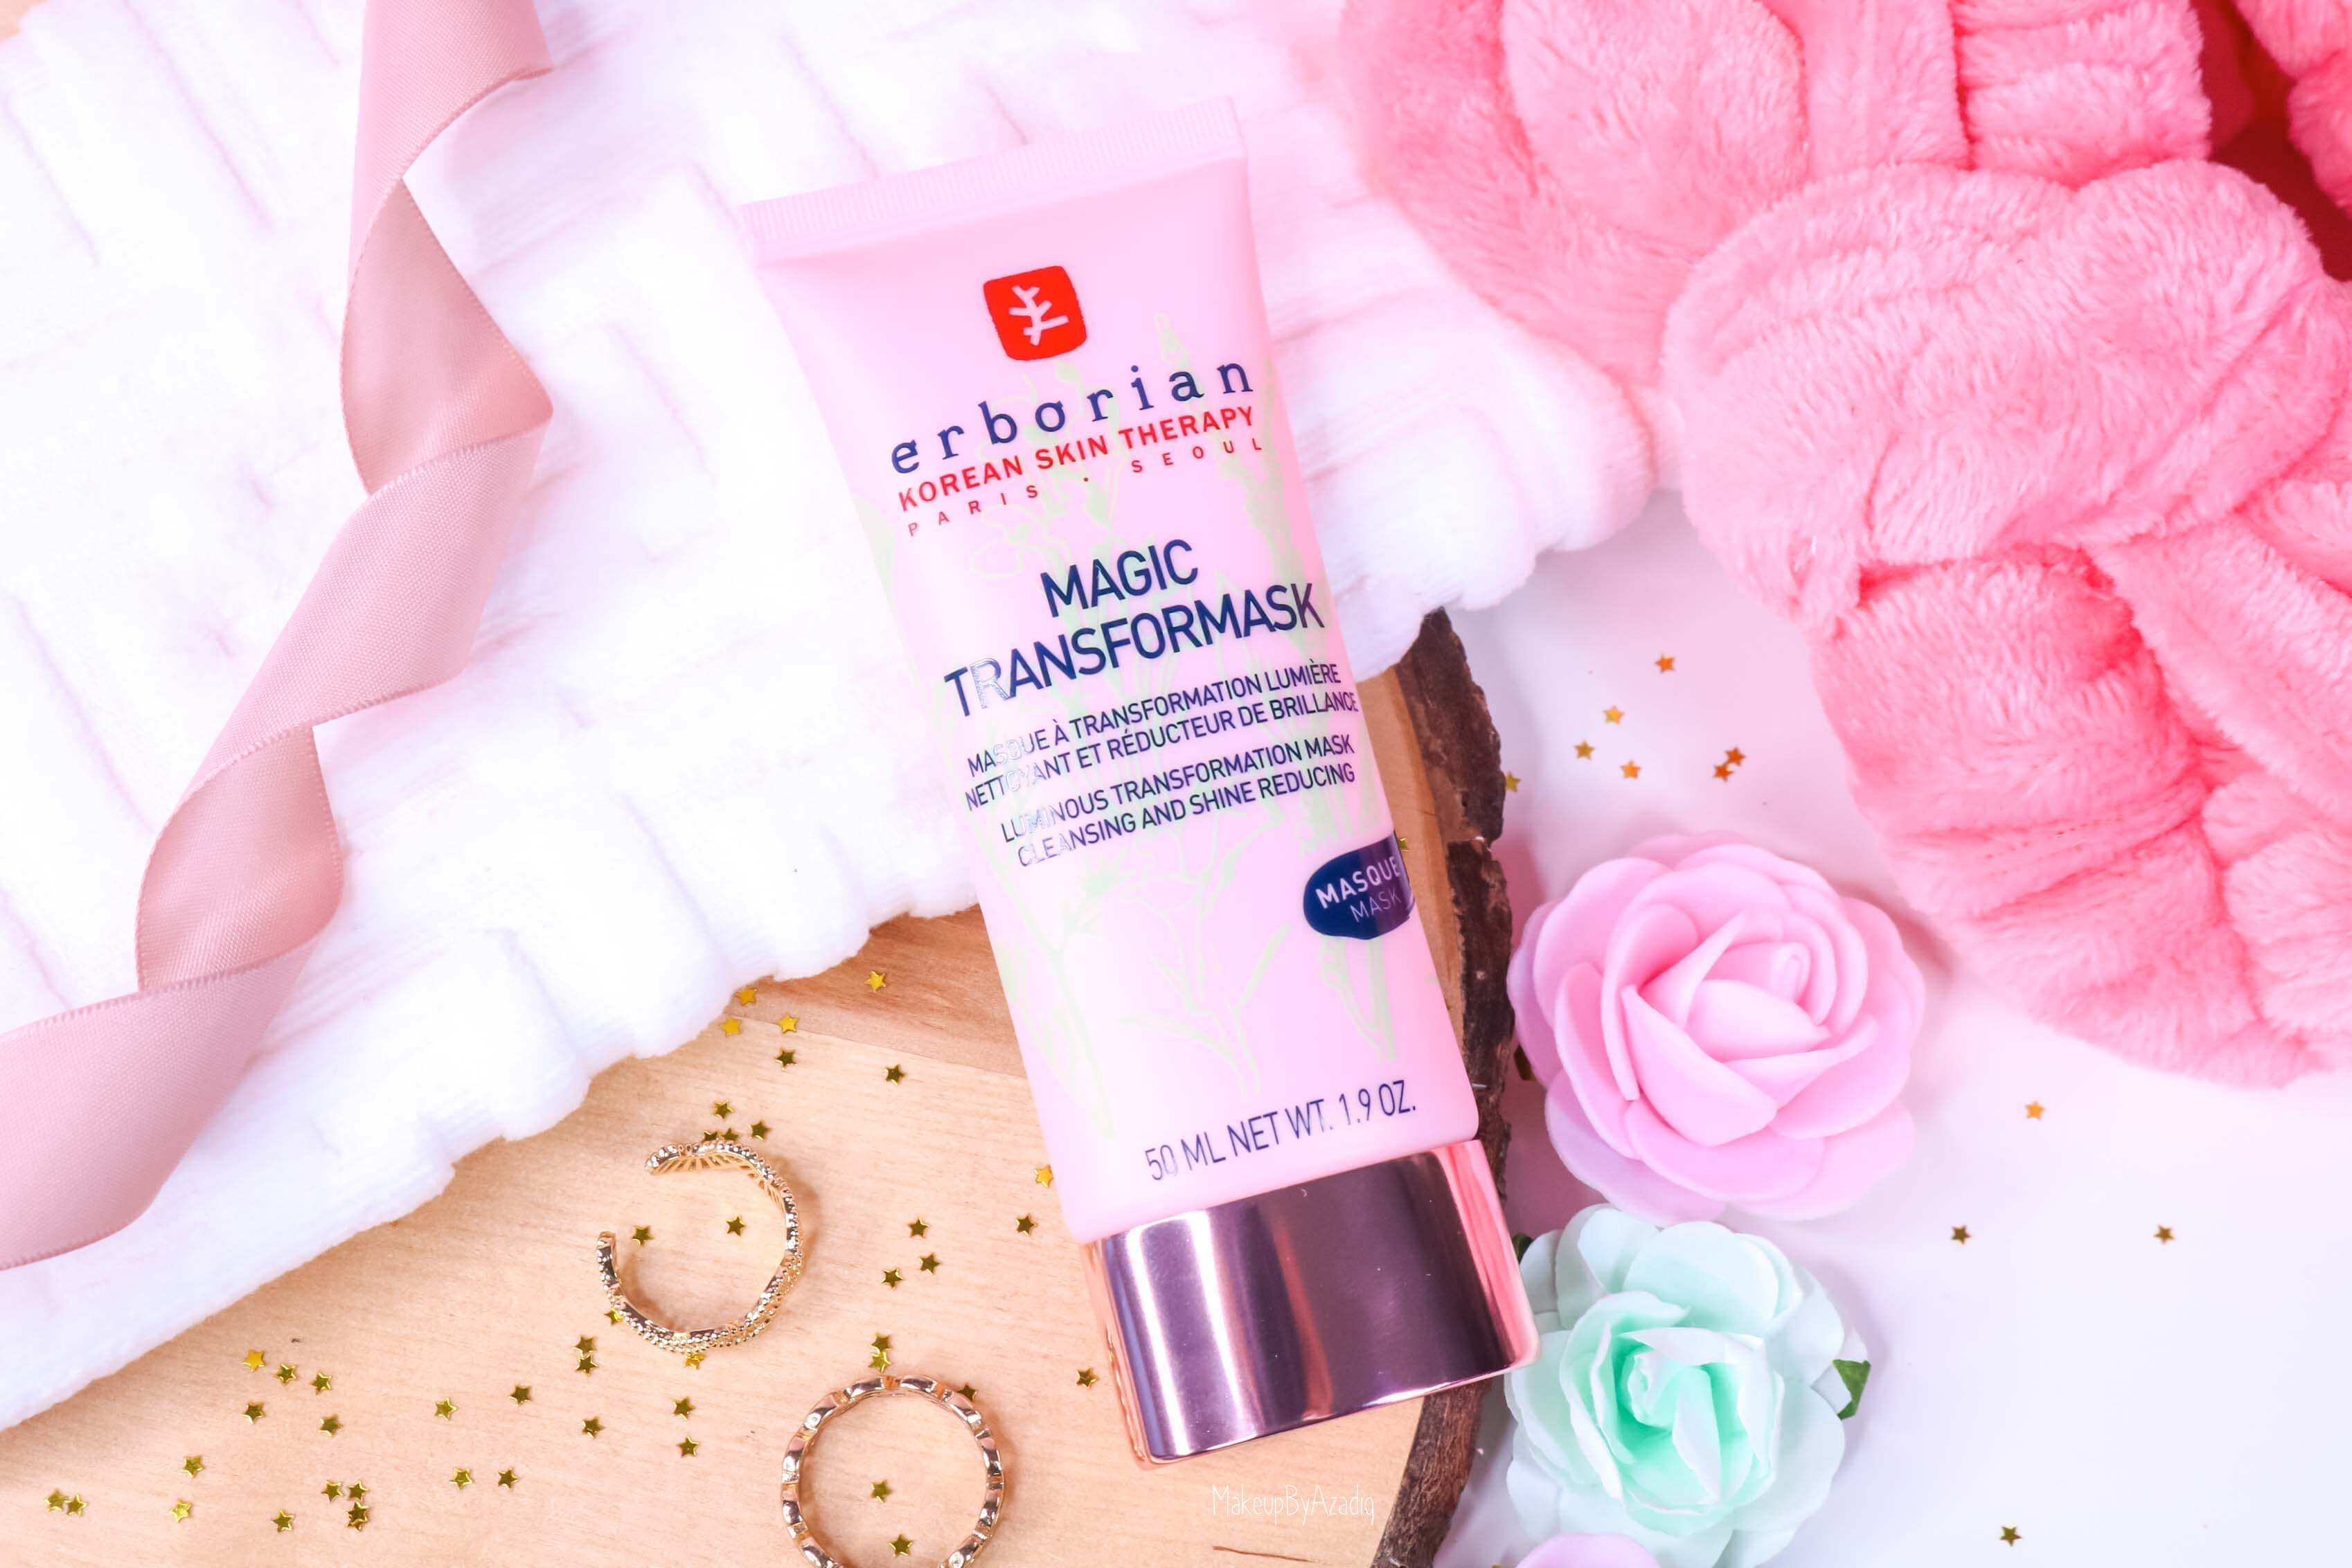 revue-magic-transformask-erborian-masque-visage-rose-sephora-avis-prix-makeupbyazadig-korean-skin